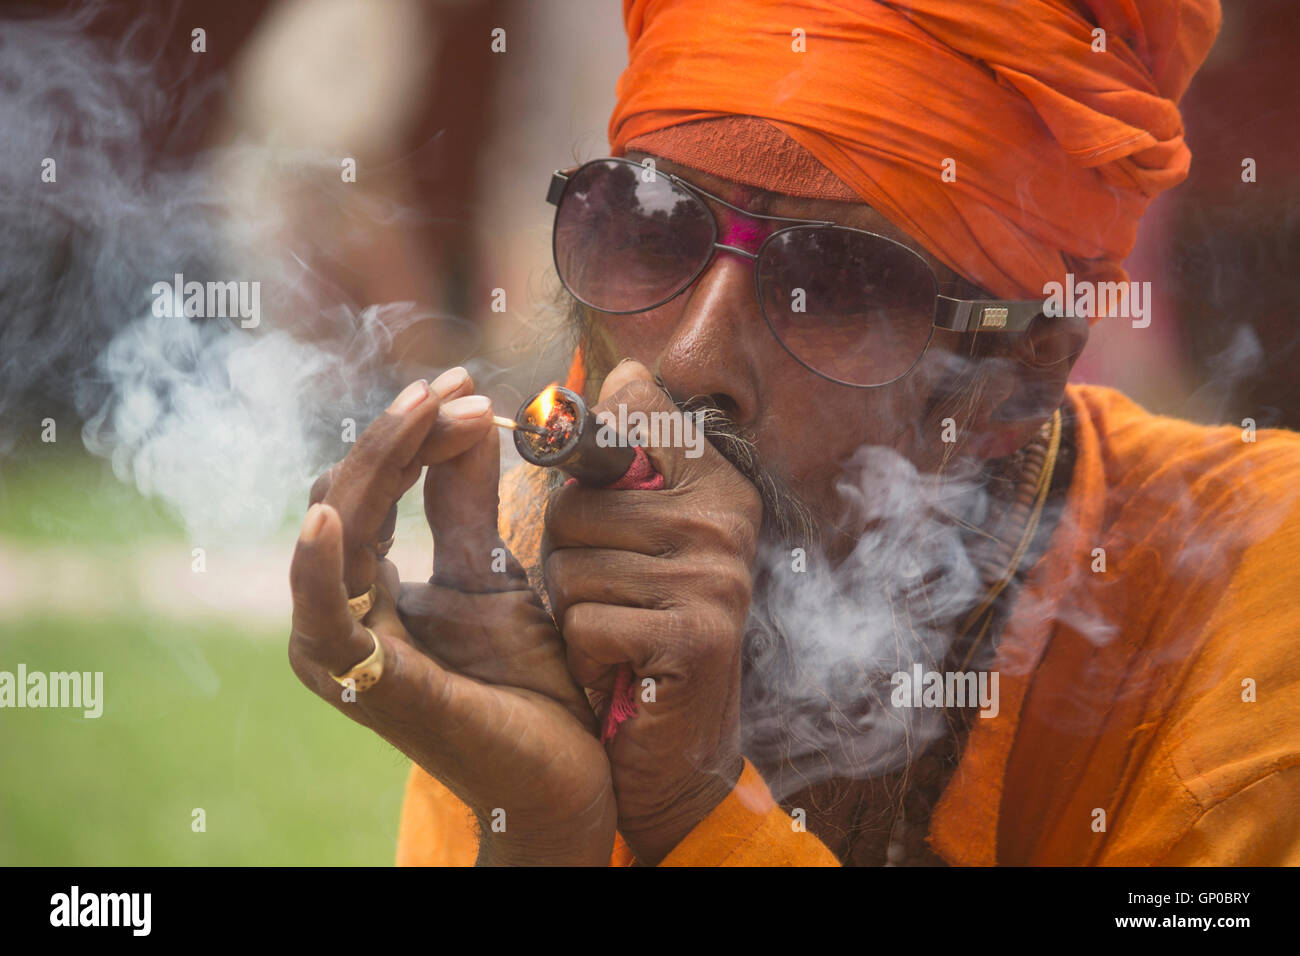 Smoking Chillum High Resolution Stock Photography And Images Alamy